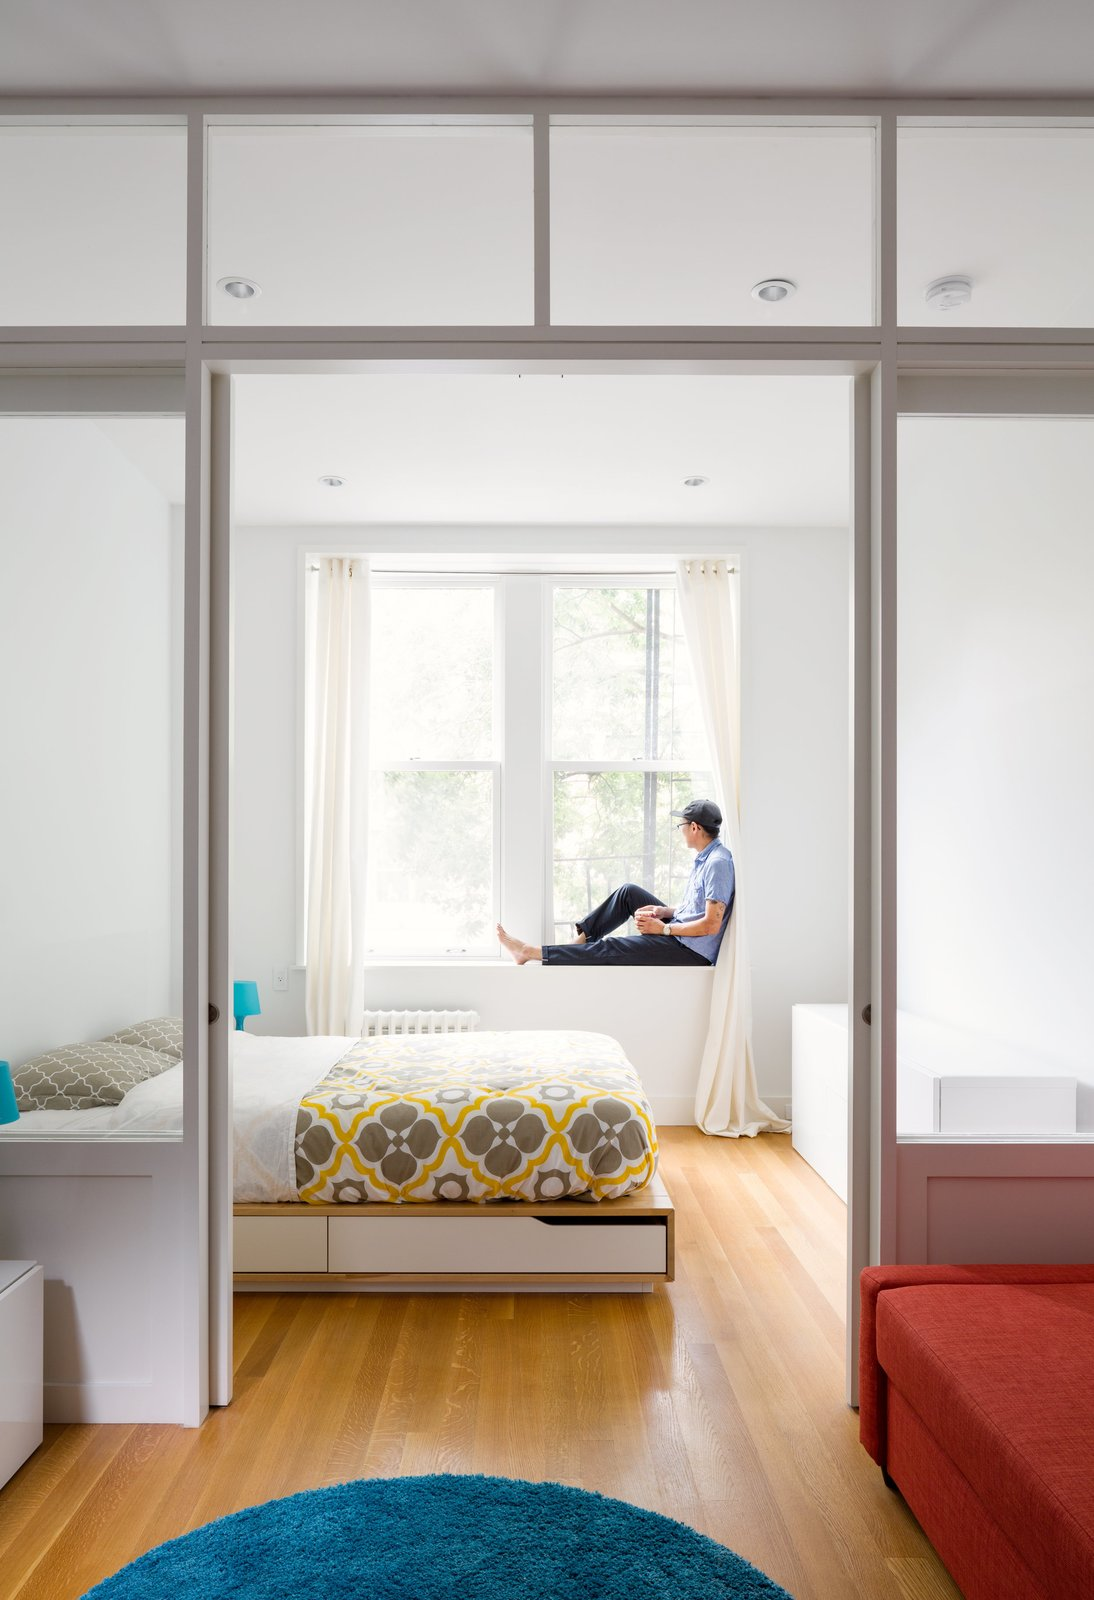 By replacing a wall with a custom wood-and-glass partition, architect Matt Krajewski transformed a previously dark one-bedroom railroad apartment in Manhattan into a light-filled home. Compact furnishings, like a Mandal bed frame from IKEA with integrated storage, maximize every inch of the 390-square-foot unit, housed in a former tenement building. Tagged: Bedroom, Bed, Recessed Lighting, and Medium Hardwood Floor.  Photo 1 of 11 in Cozy and Compact: 10 Tiny Homes in the Big Apple from This 390-Square-Foot Renovation Is Compact Yet Comfortable in Greenwich Village